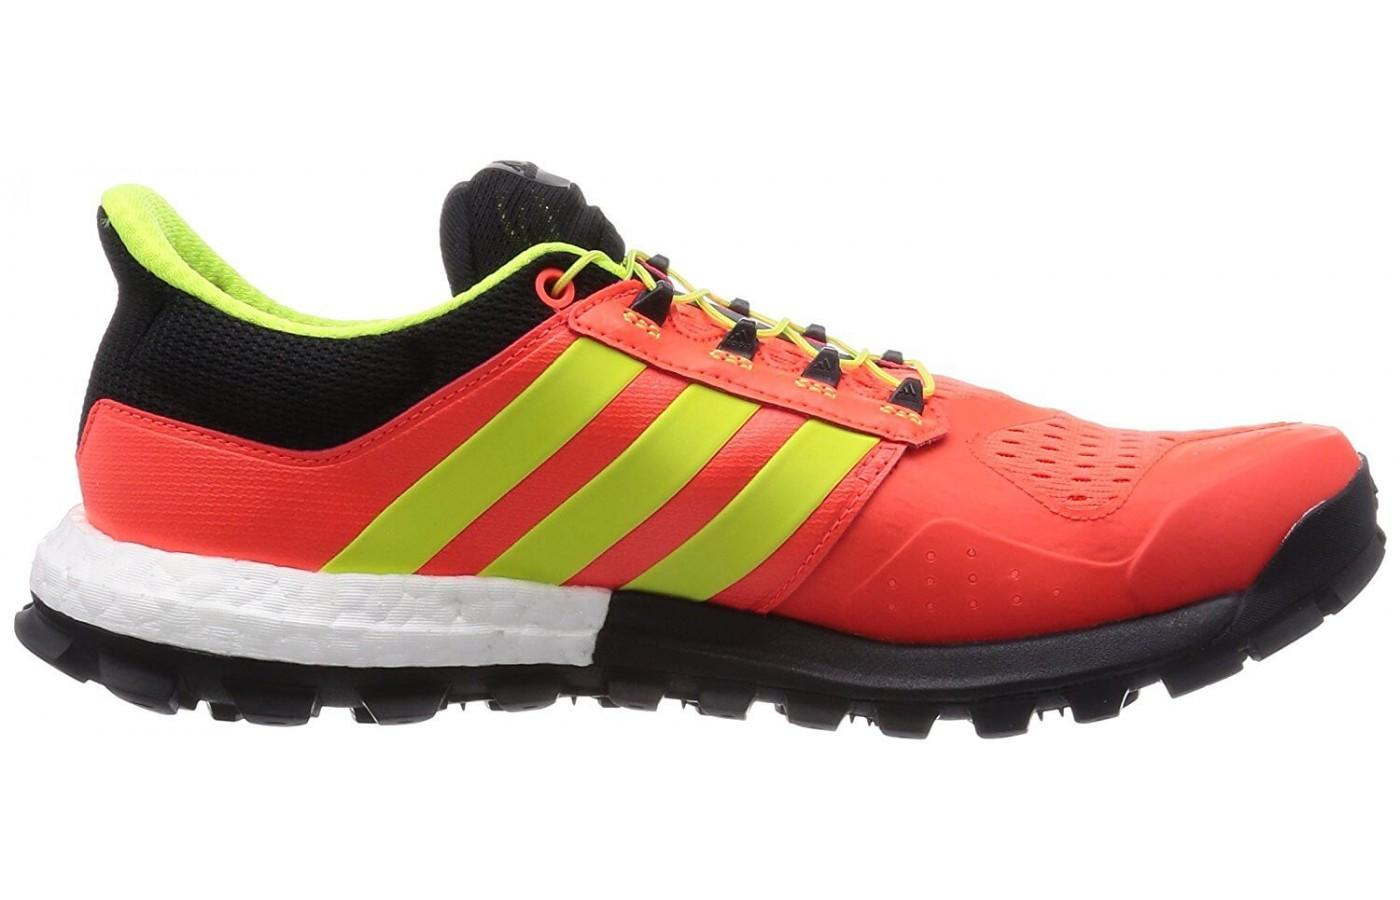 Adidas Adistar Raven has a distinct profile